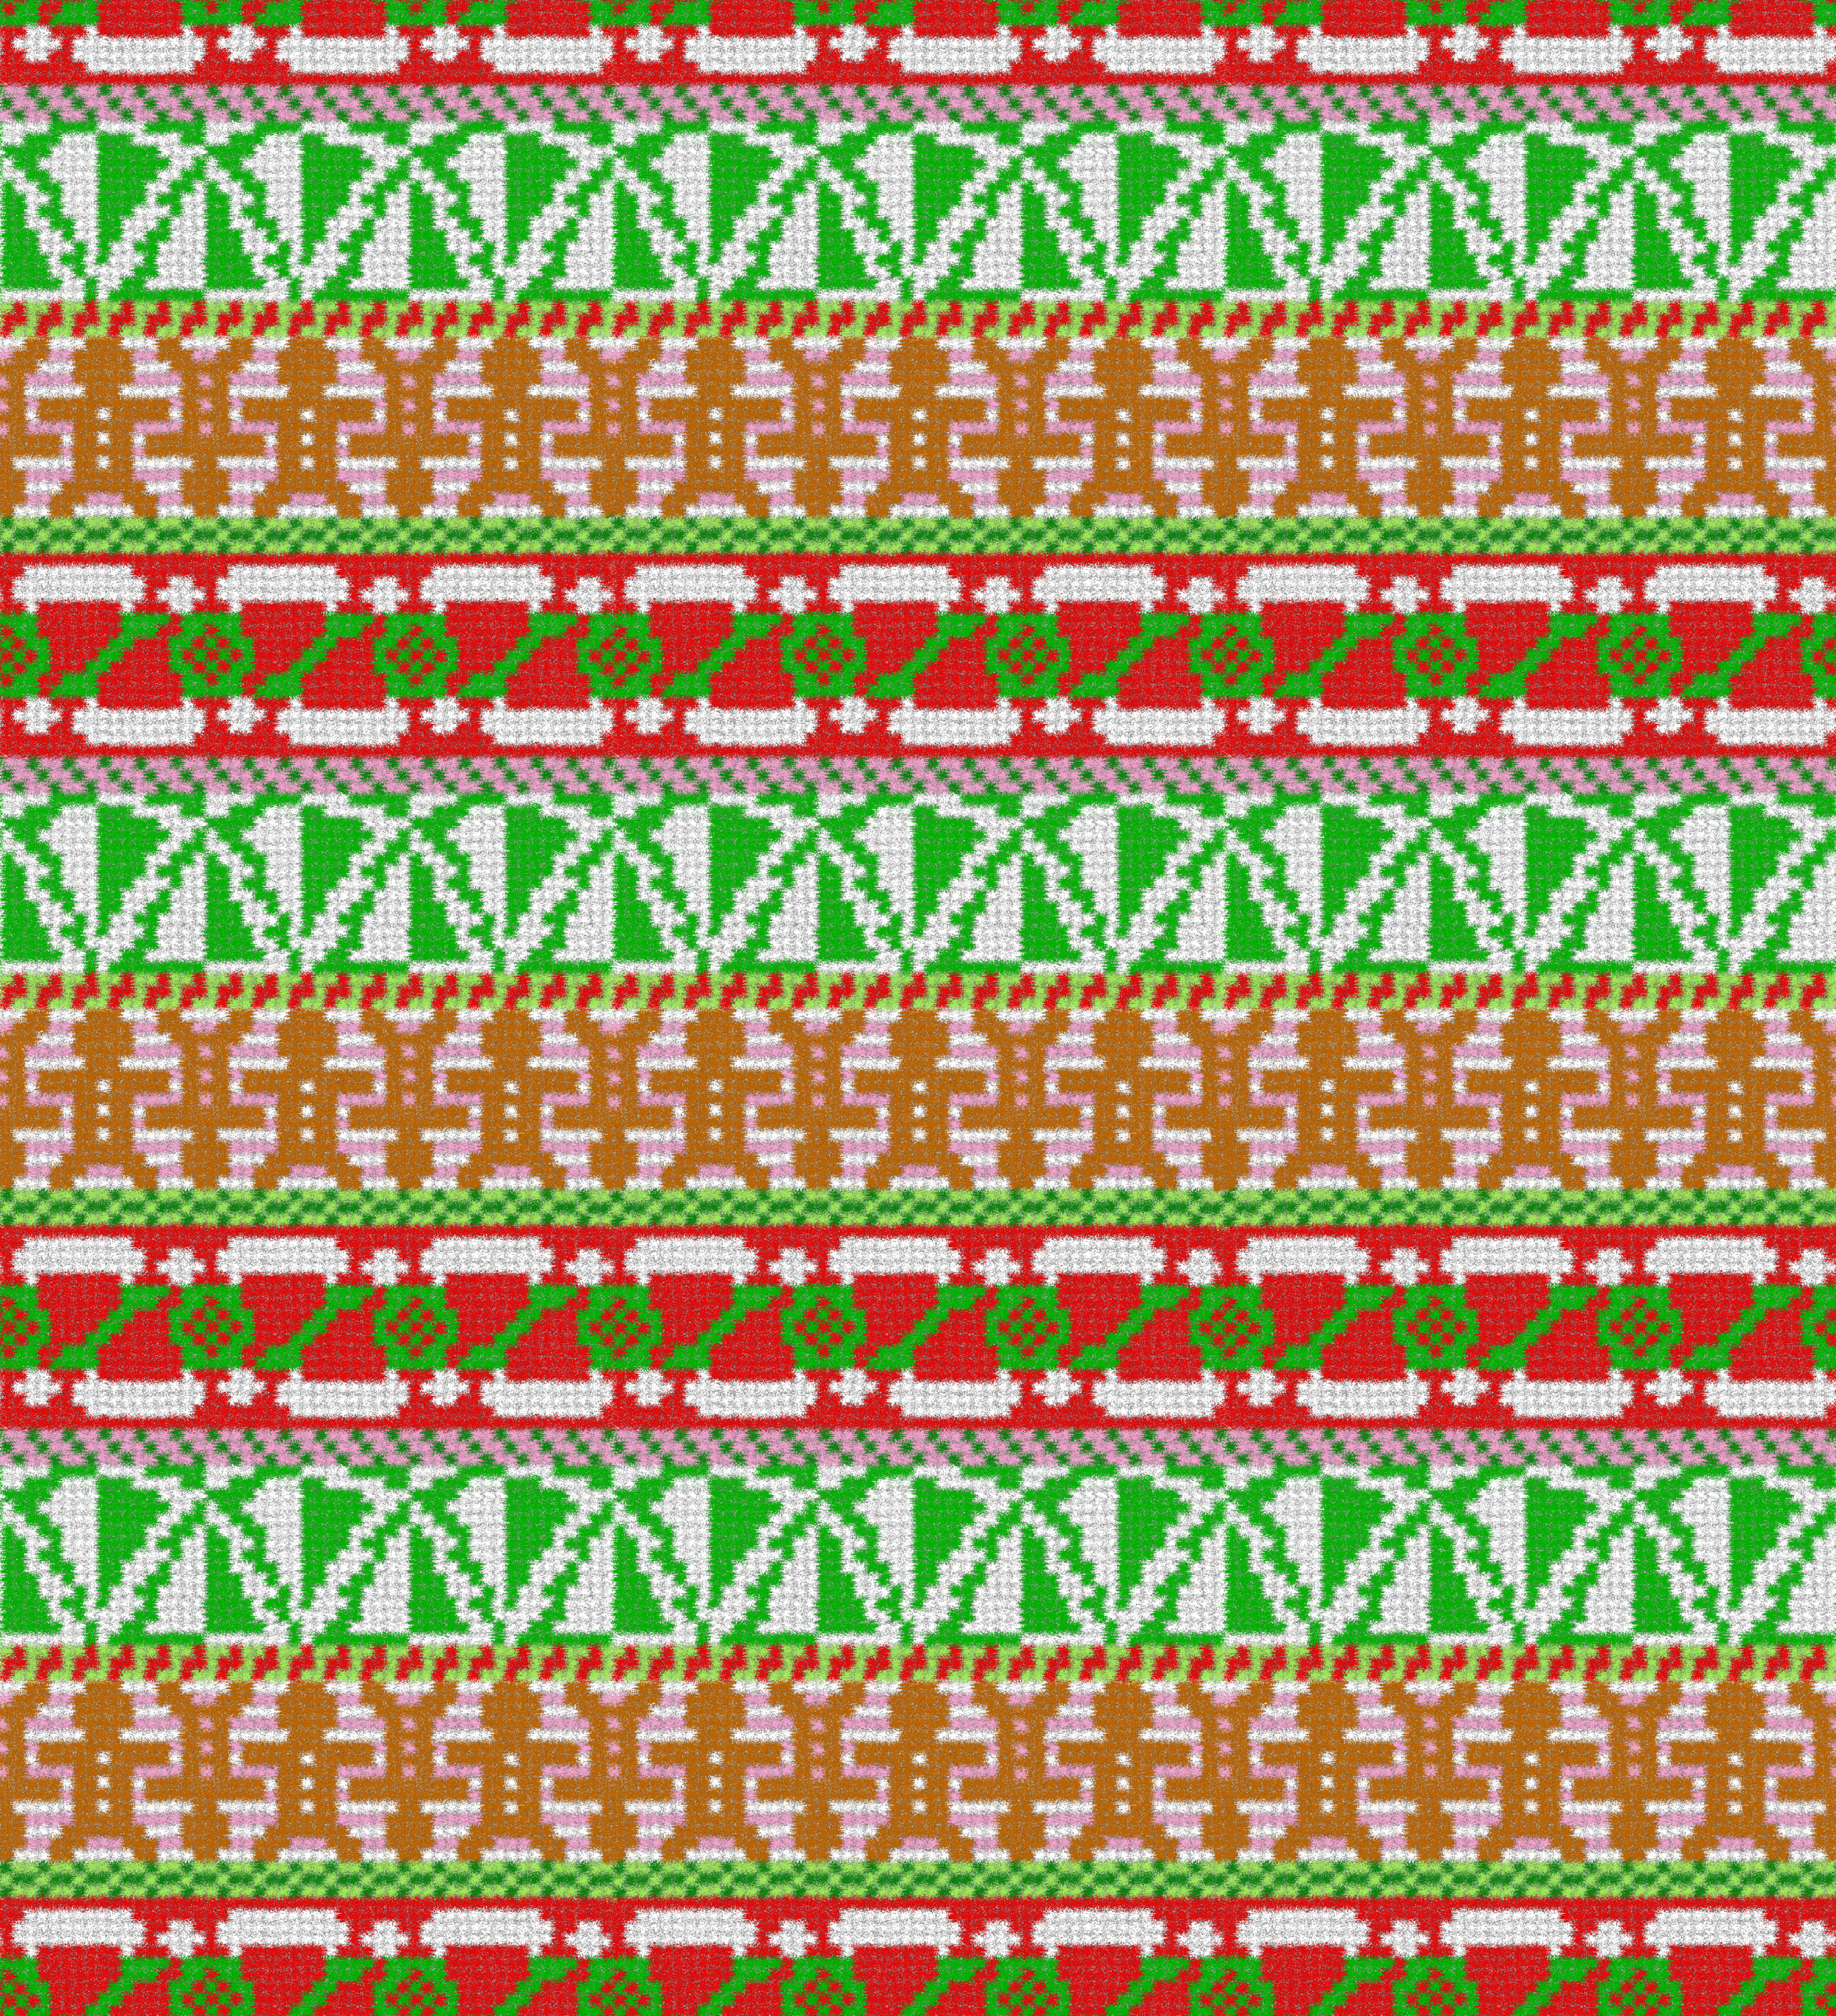 """This was my entry in the Spoonflower Fair Isle competition. Traditional Fair Isle patterns only have two colors per line. I was working with those parameters while trying for a sense of """"thick wool."""""""